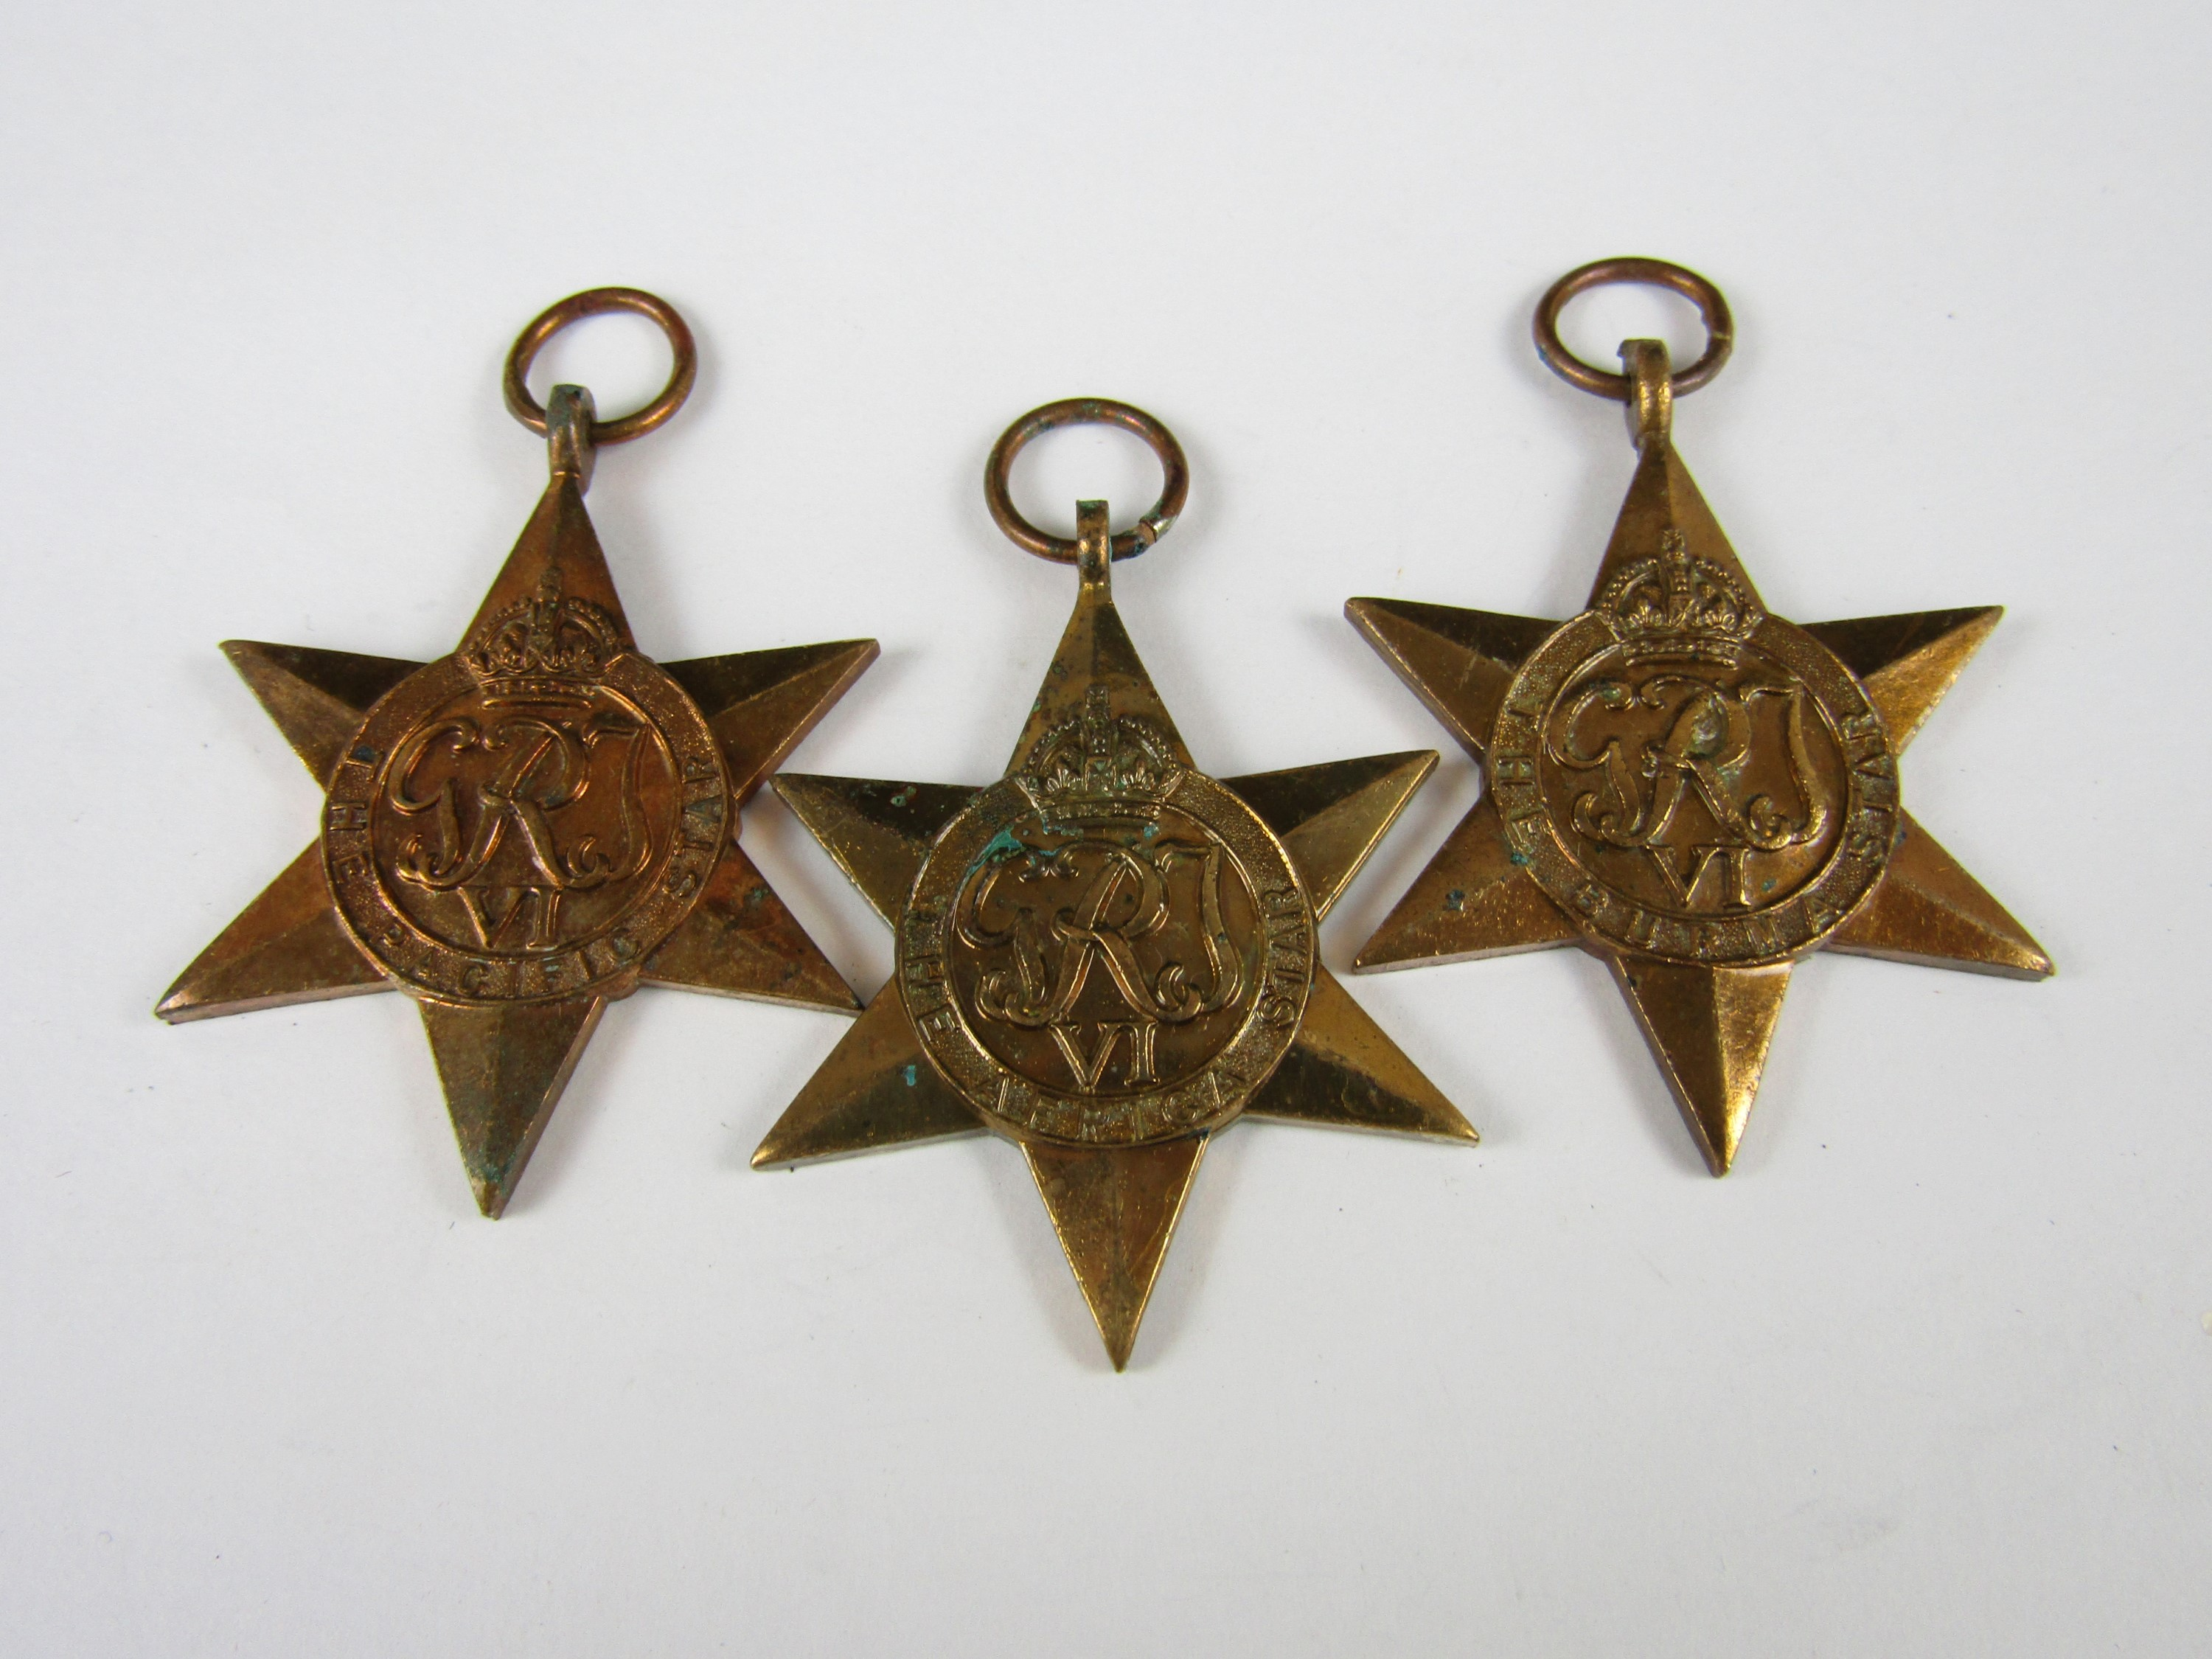 Lot 14 - An Africa Star, engraved to 159329 Capt N C Gordon, R Signals, together with un-engraved Burma and